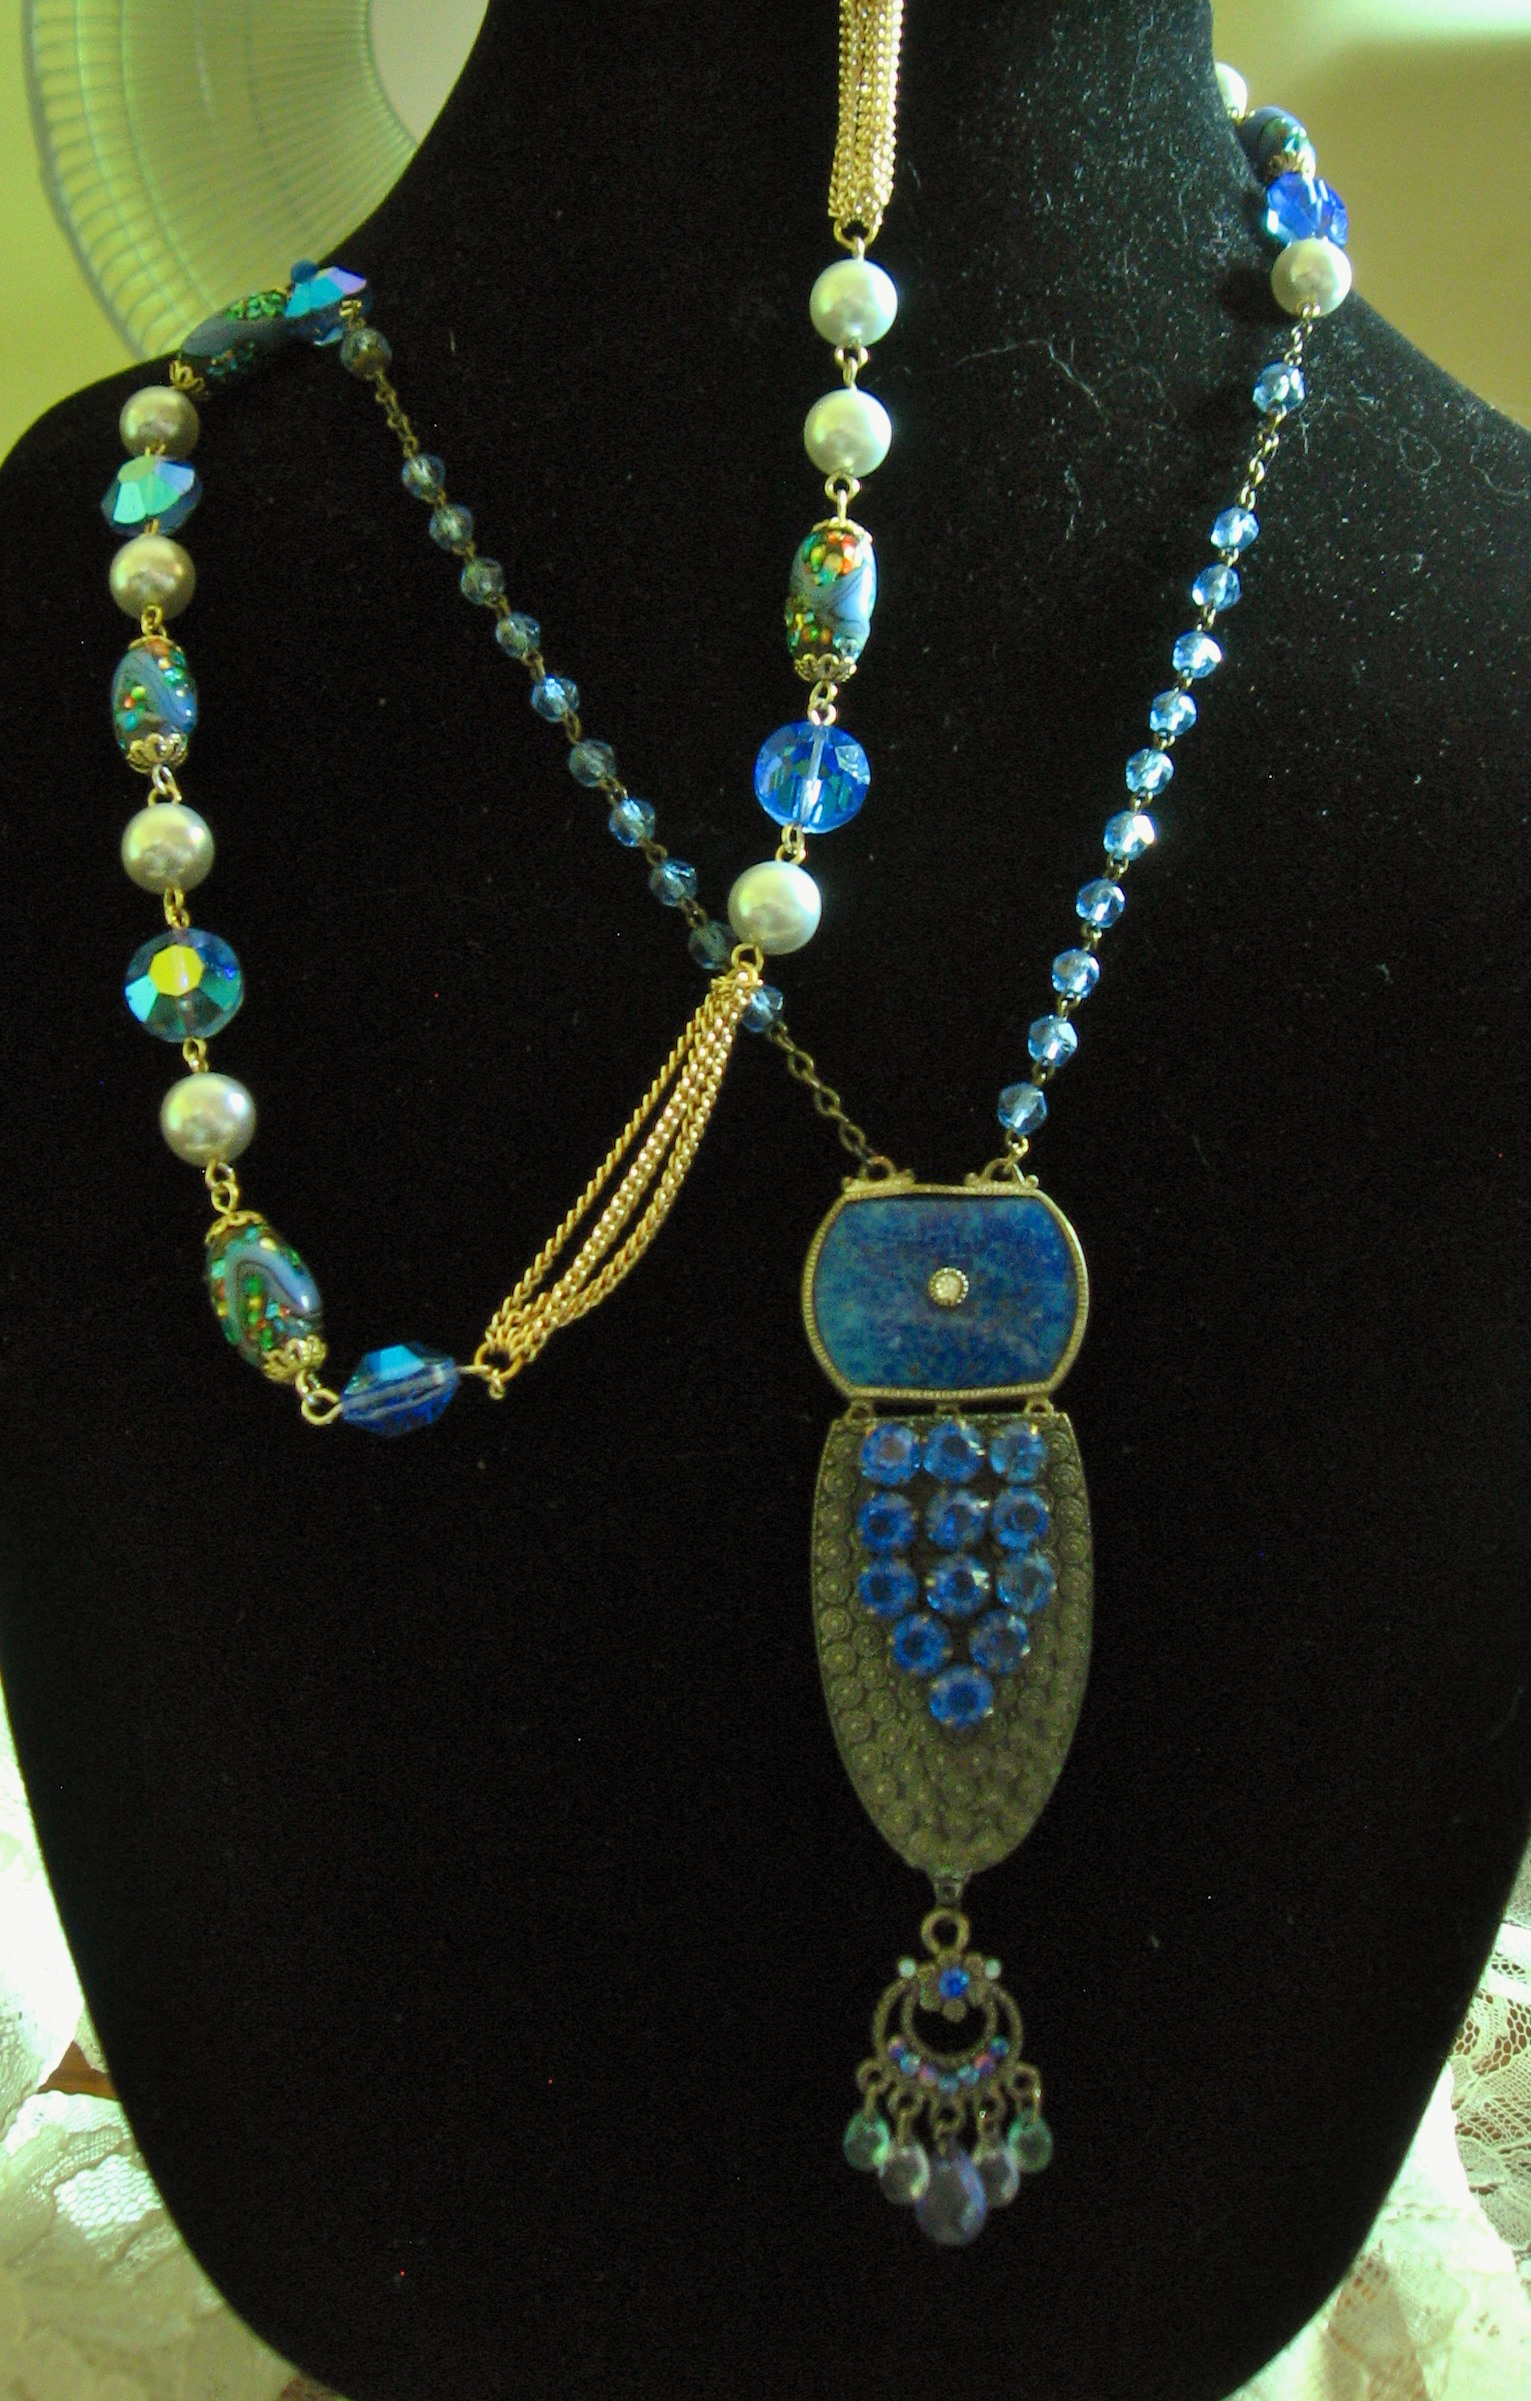 Redesigned Vintage Jewelry